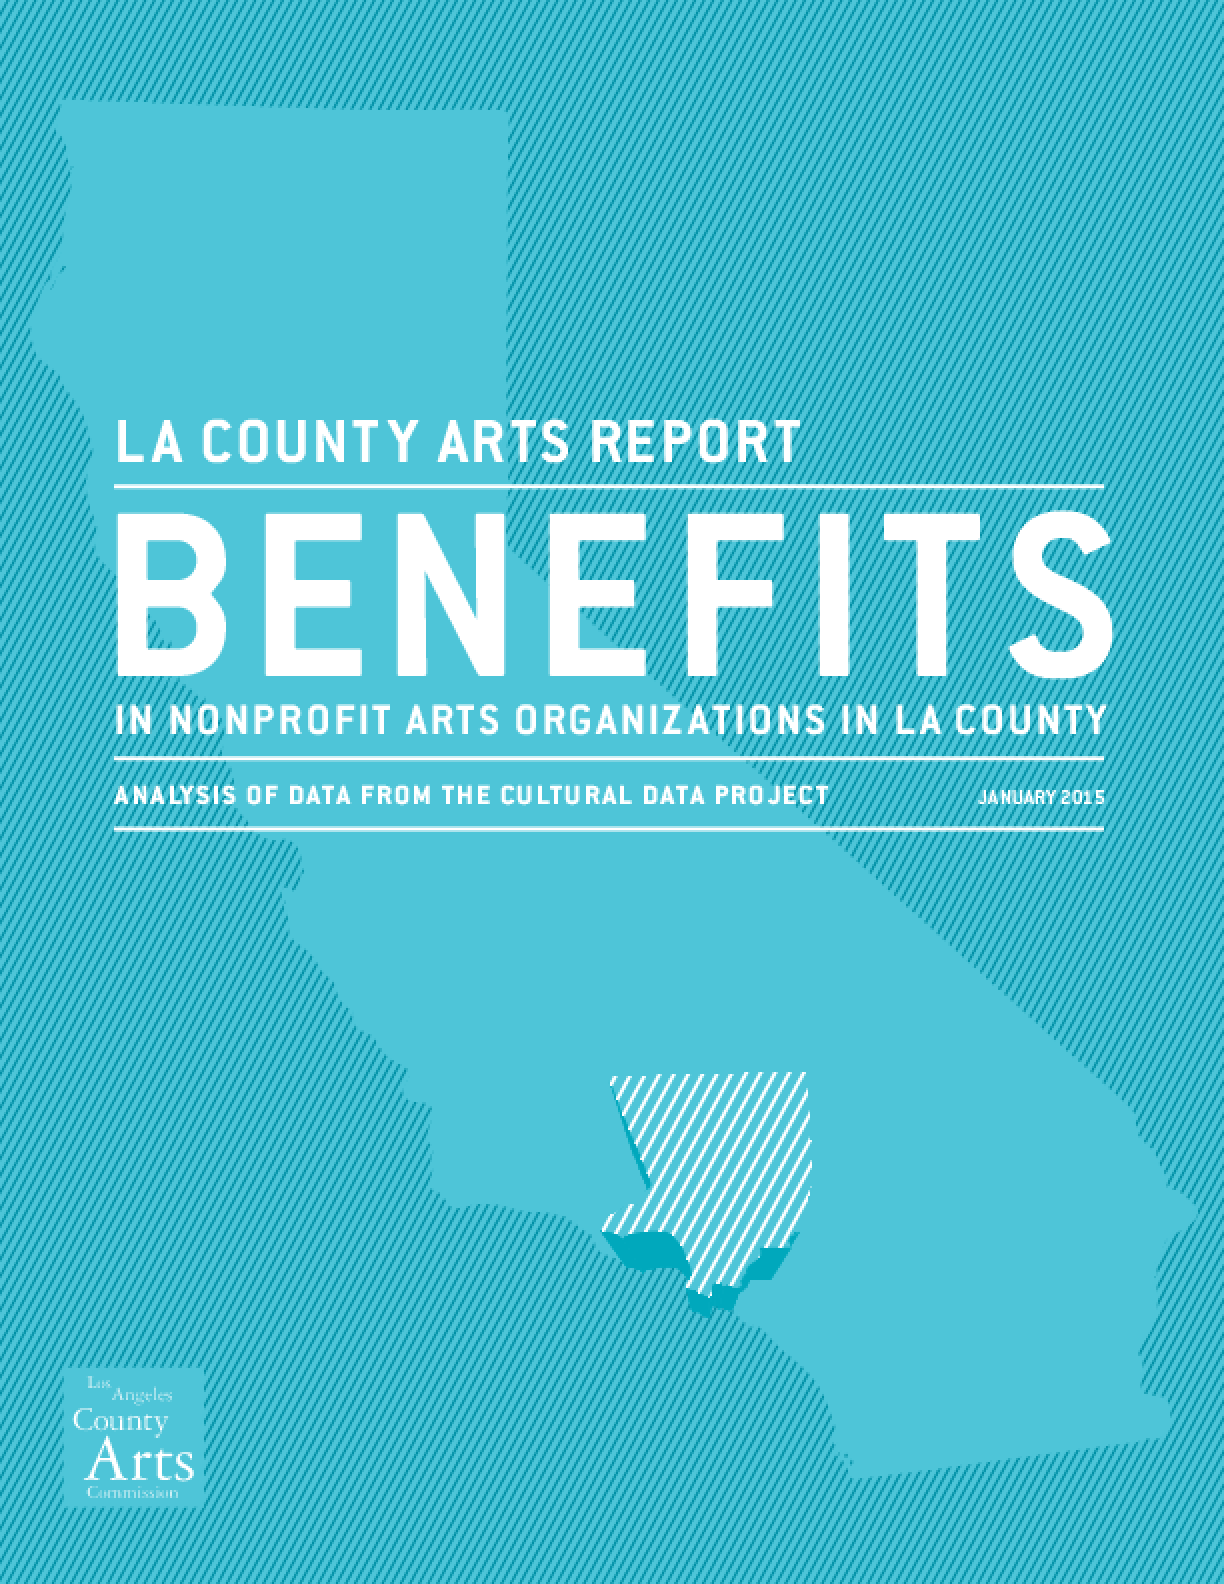 Benefits in Arts Nonprofit Organizations in LA County